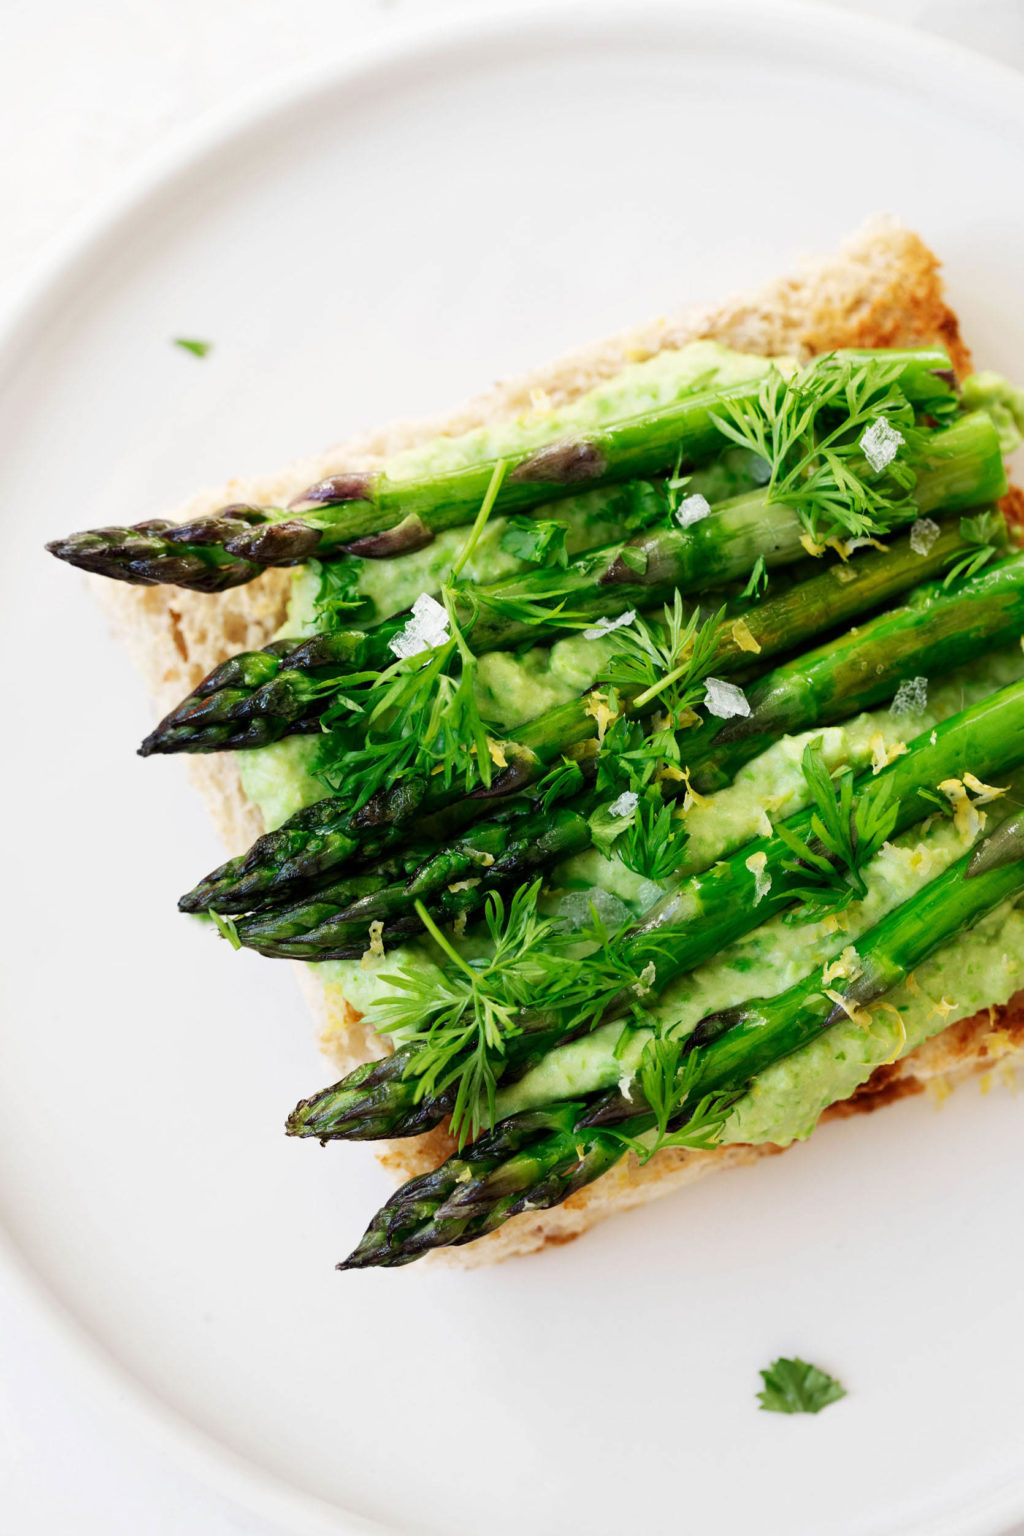 Asparagus spears have been grilled and piled onto toast with a creamy topping. They're garnished with dill, lemon zest, and flaky salt.